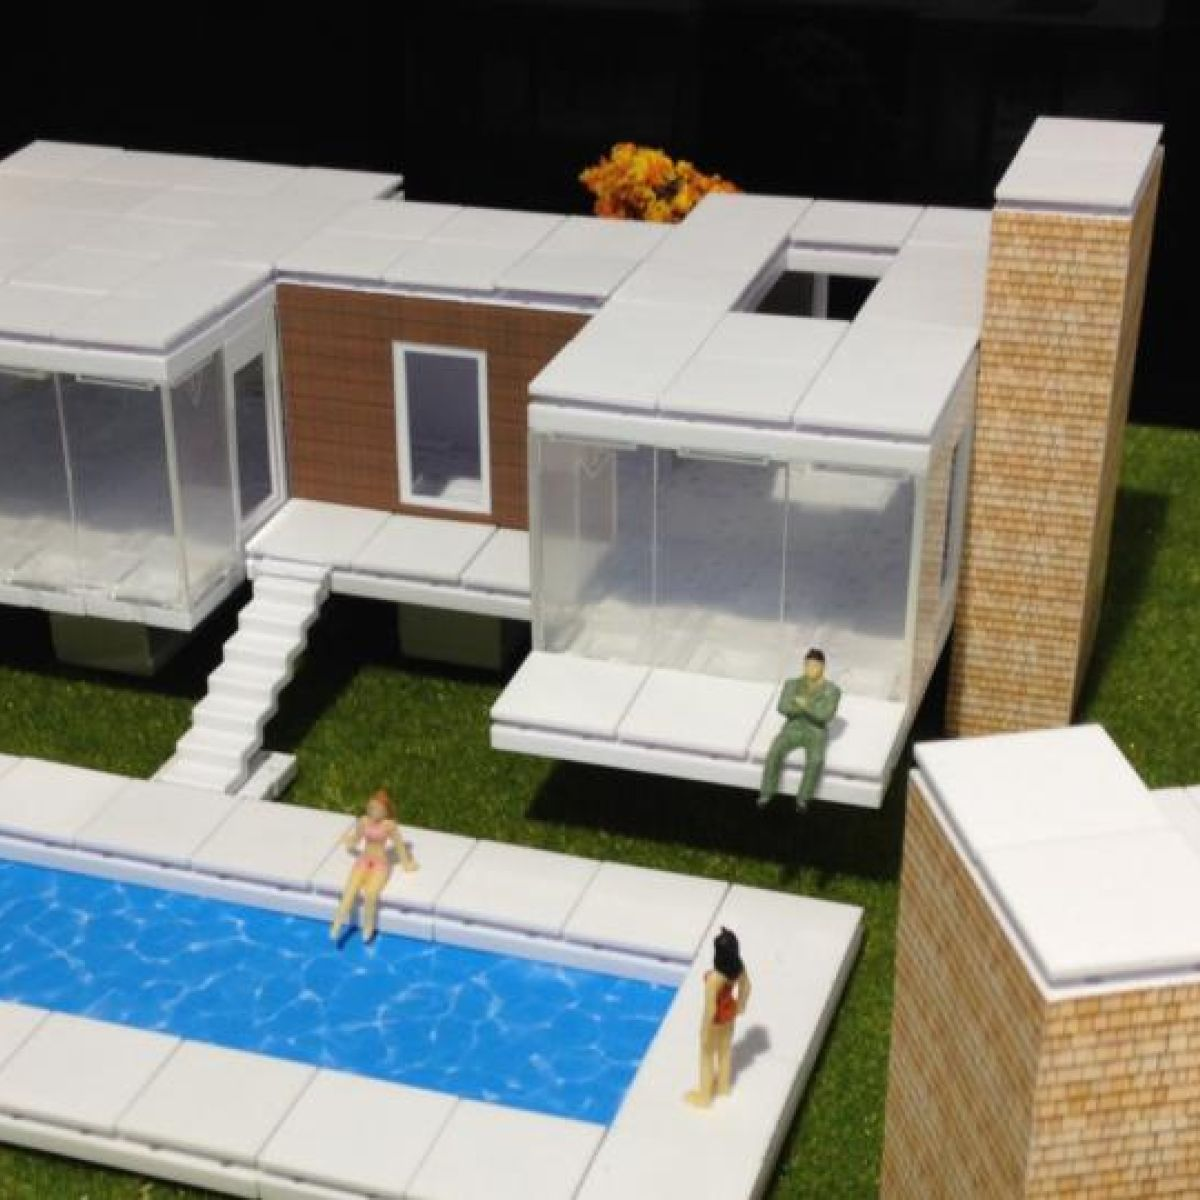 Kit permits you to build scale model and visualise your ideal home fandeluxe Images